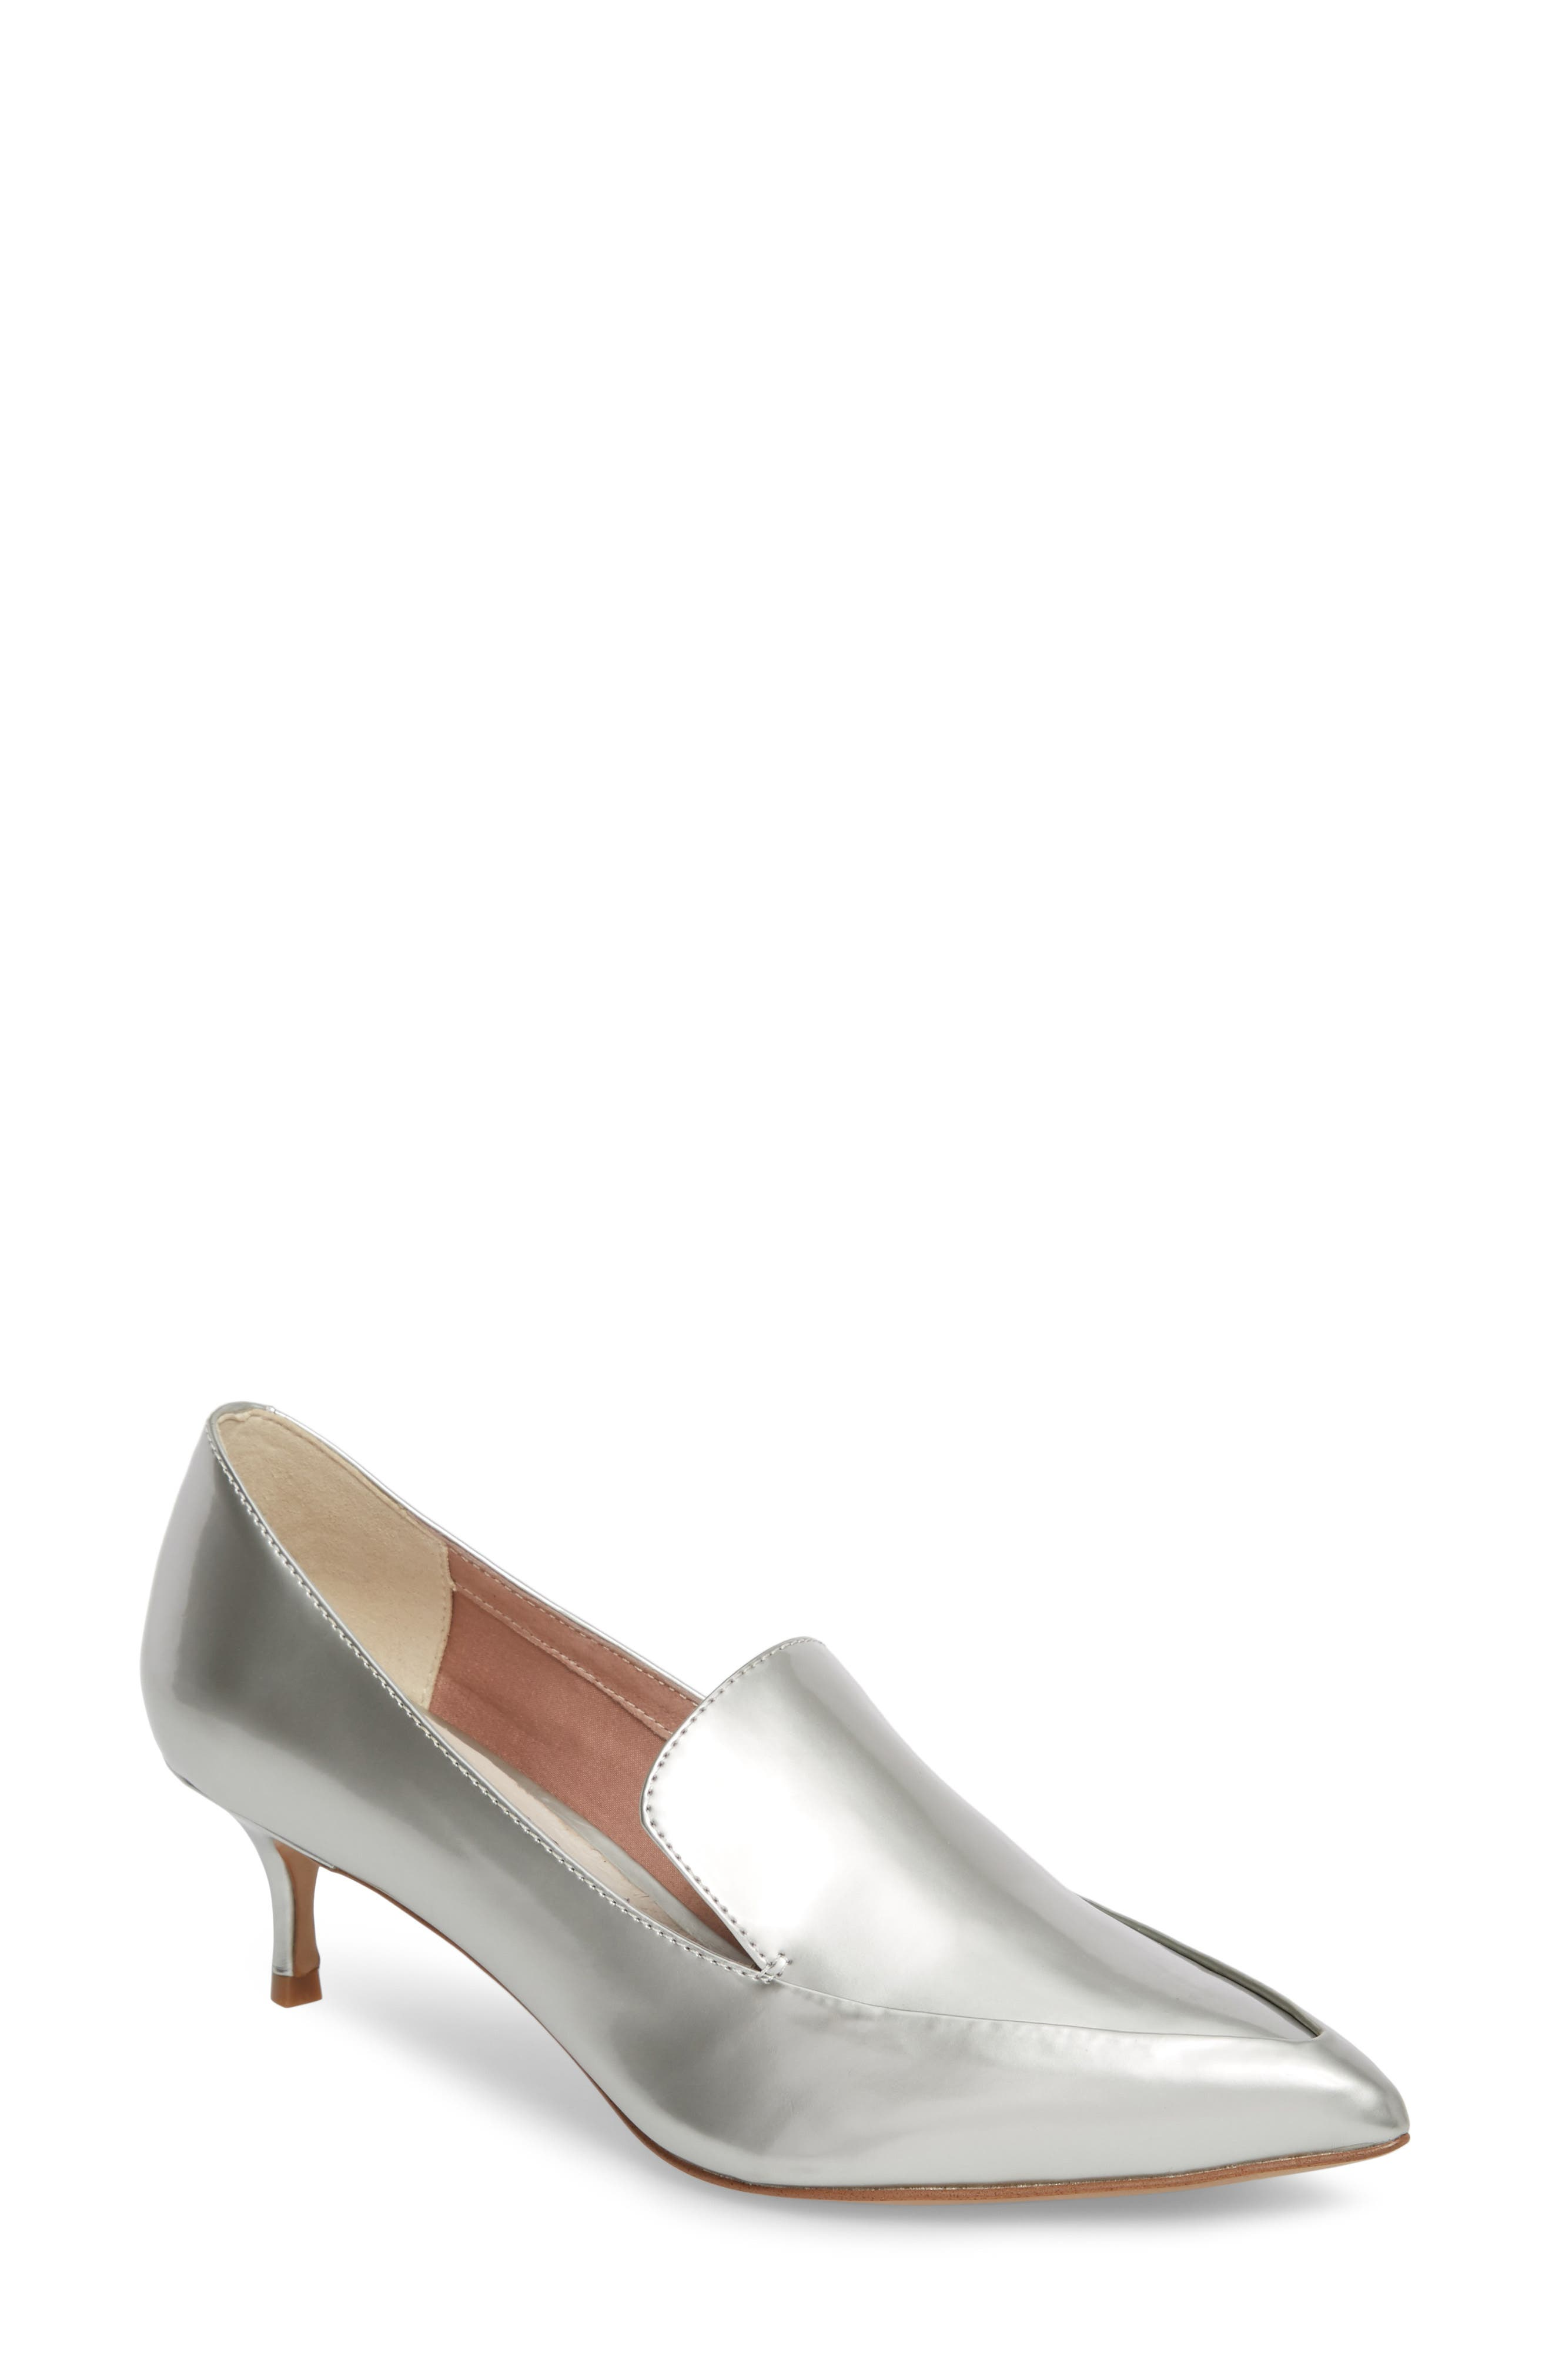 Shea Loafer Pump,                         Main,                         color, Silver Metallic Leather